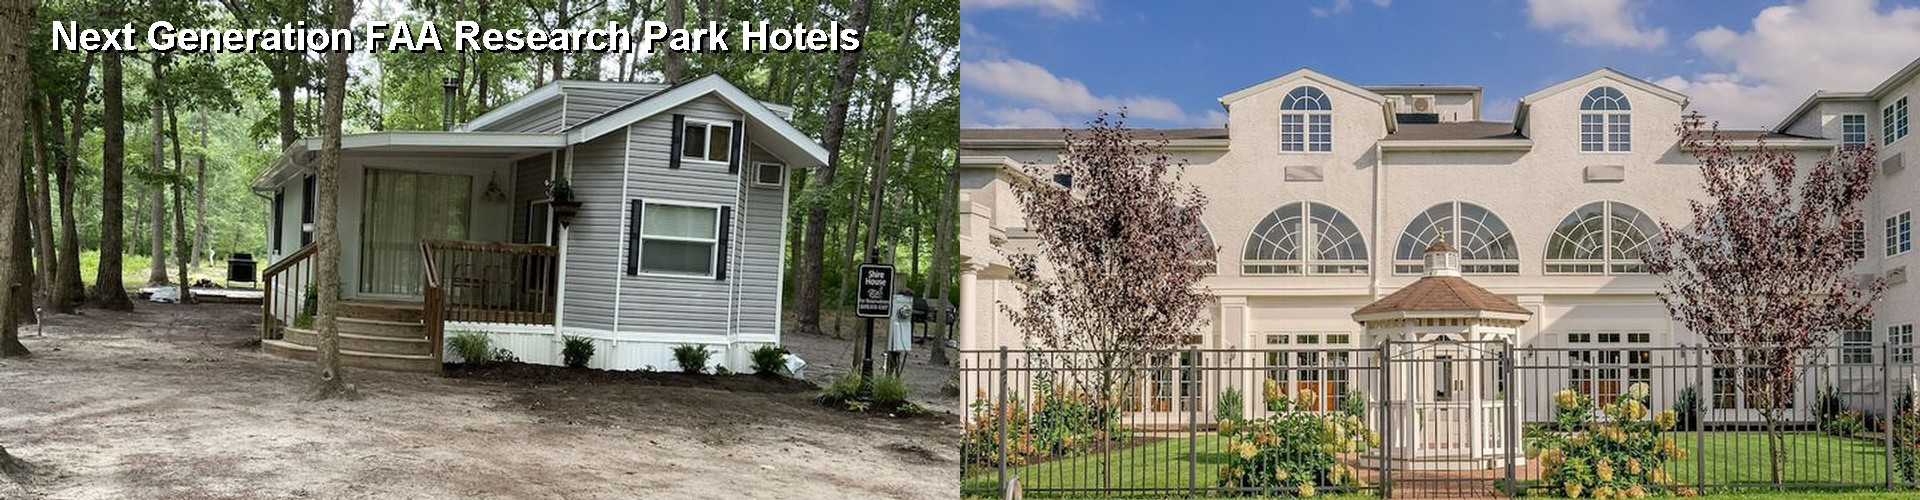 3 Best Hotels near Next Generation FAA Research Park